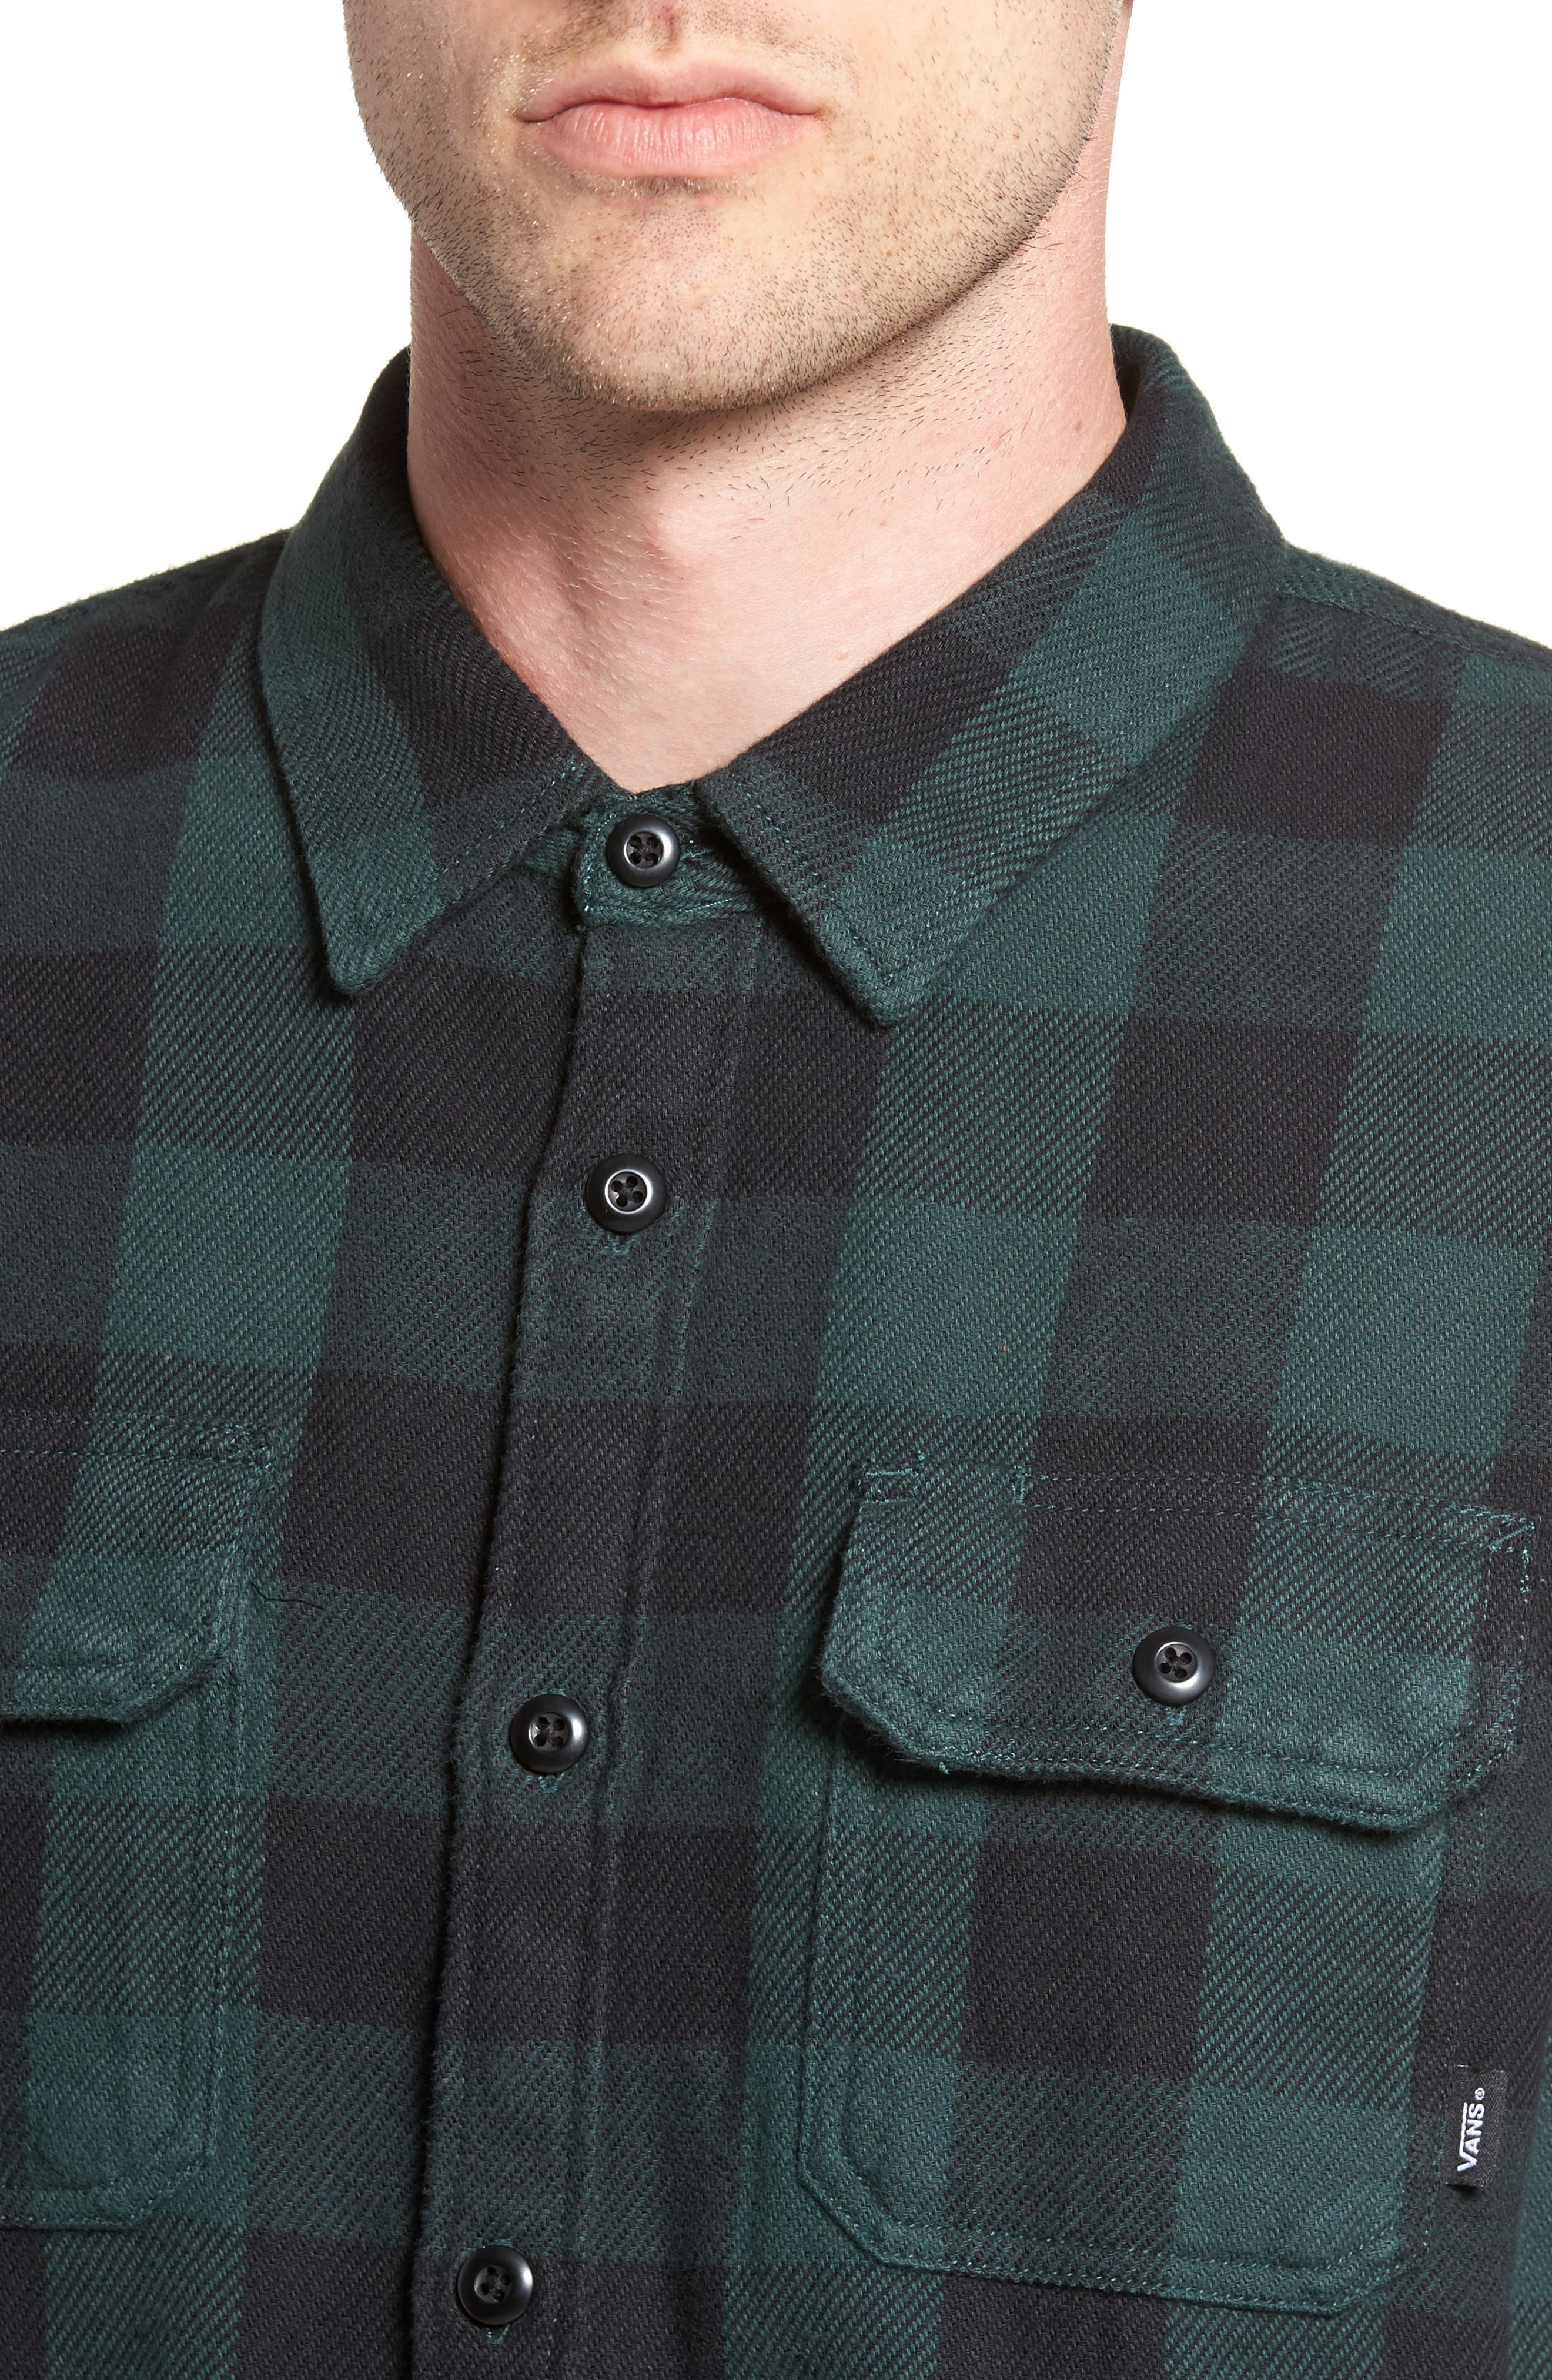 Wisner Plaid Shirt,                             Alternate thumbnail 4, color,                             001